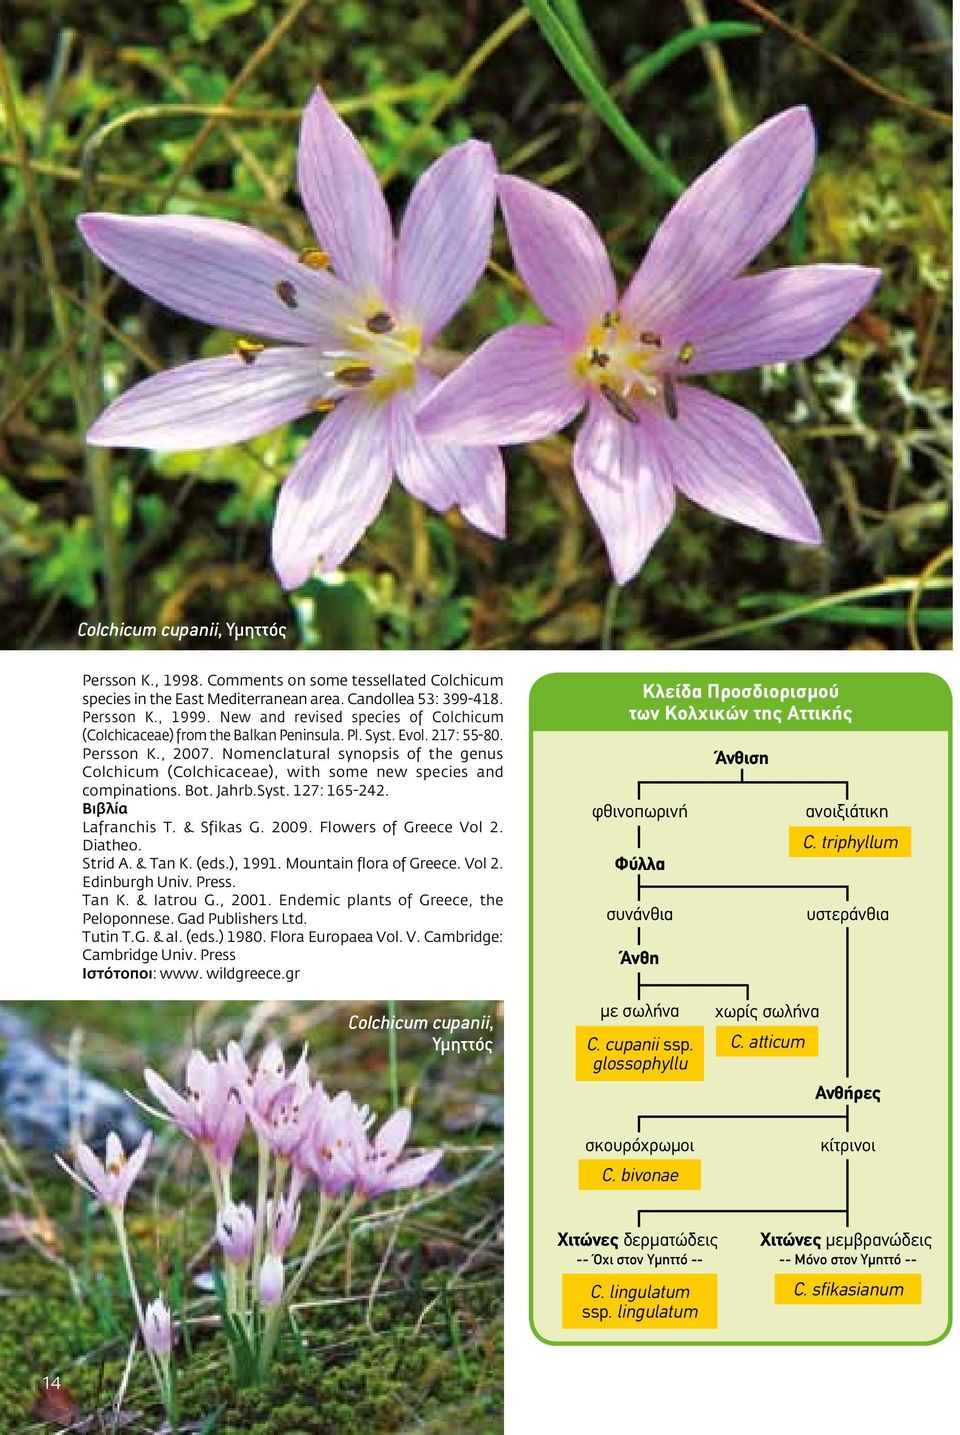 Nomenclatural synopsis of the genus Colchicum (Colchicaceae), with some new species and compinations. Bot. Jahrb.Syst. 127: 165-242. Βιβλία Lafranchis T. & Sfikas G. 2009. Flowers of Greece Vol 2.